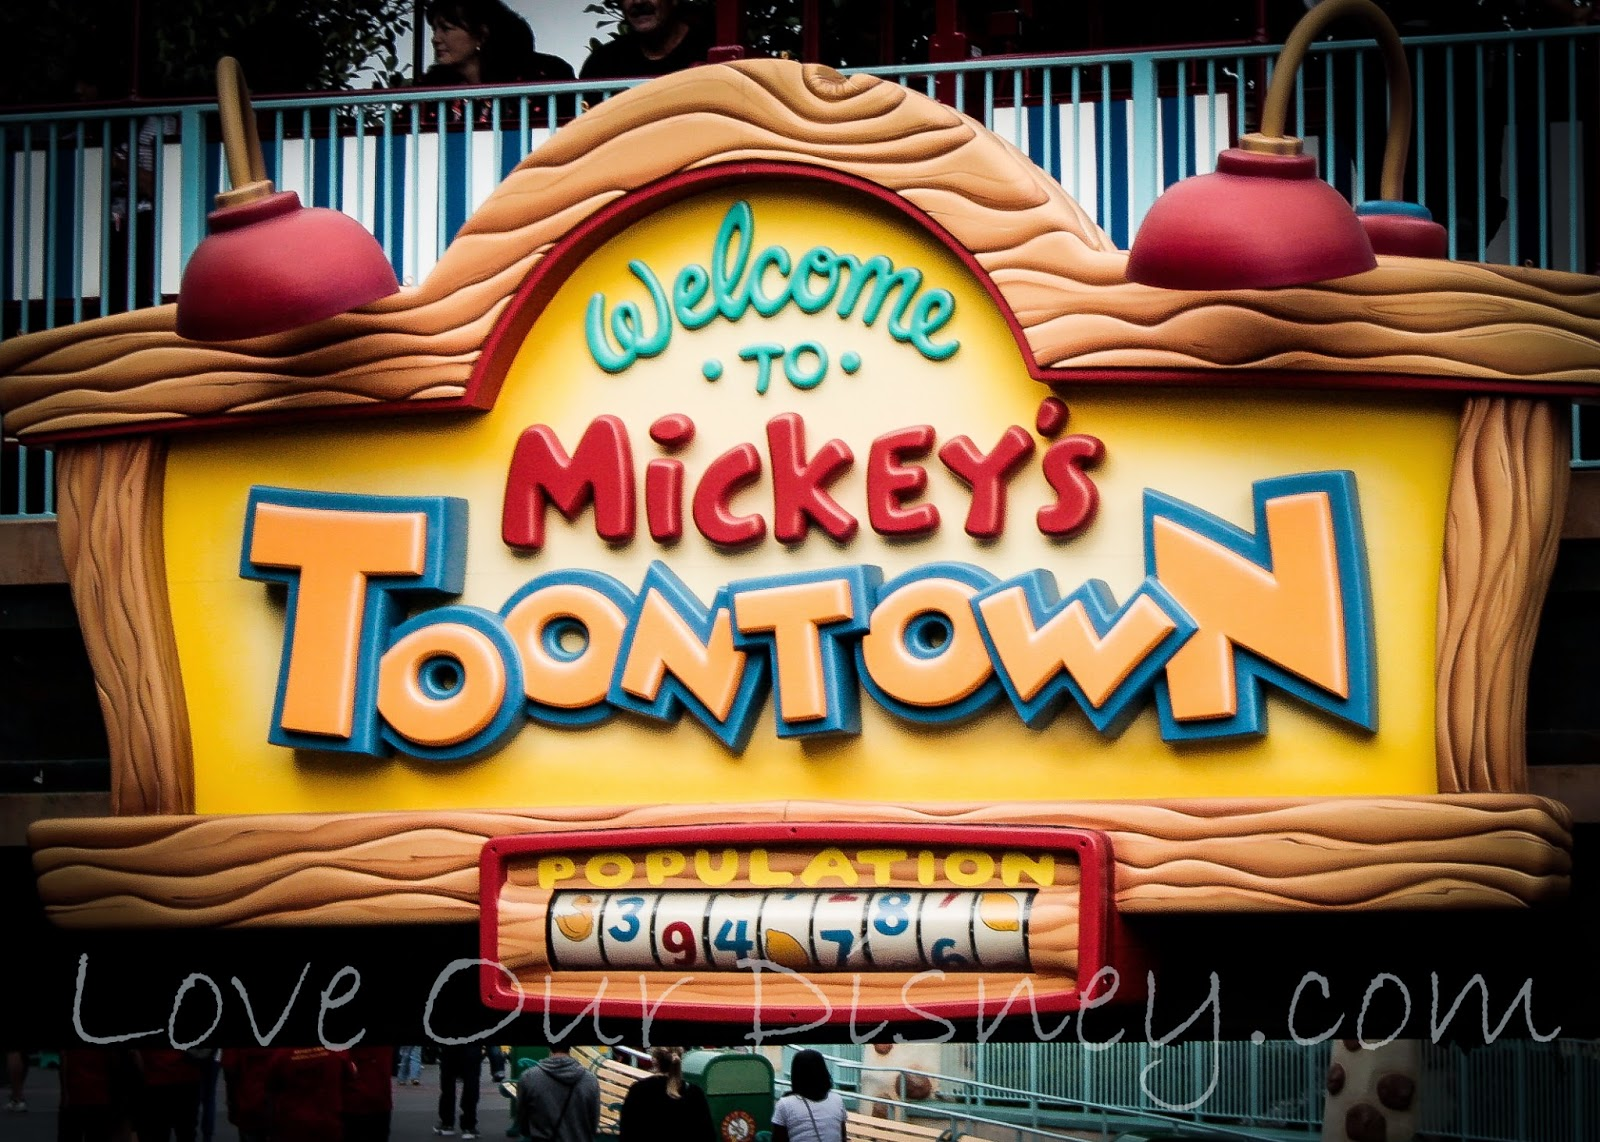 23 Must-Know Disneyland Tips including tips for ToonTown. LoveOurDisney.com